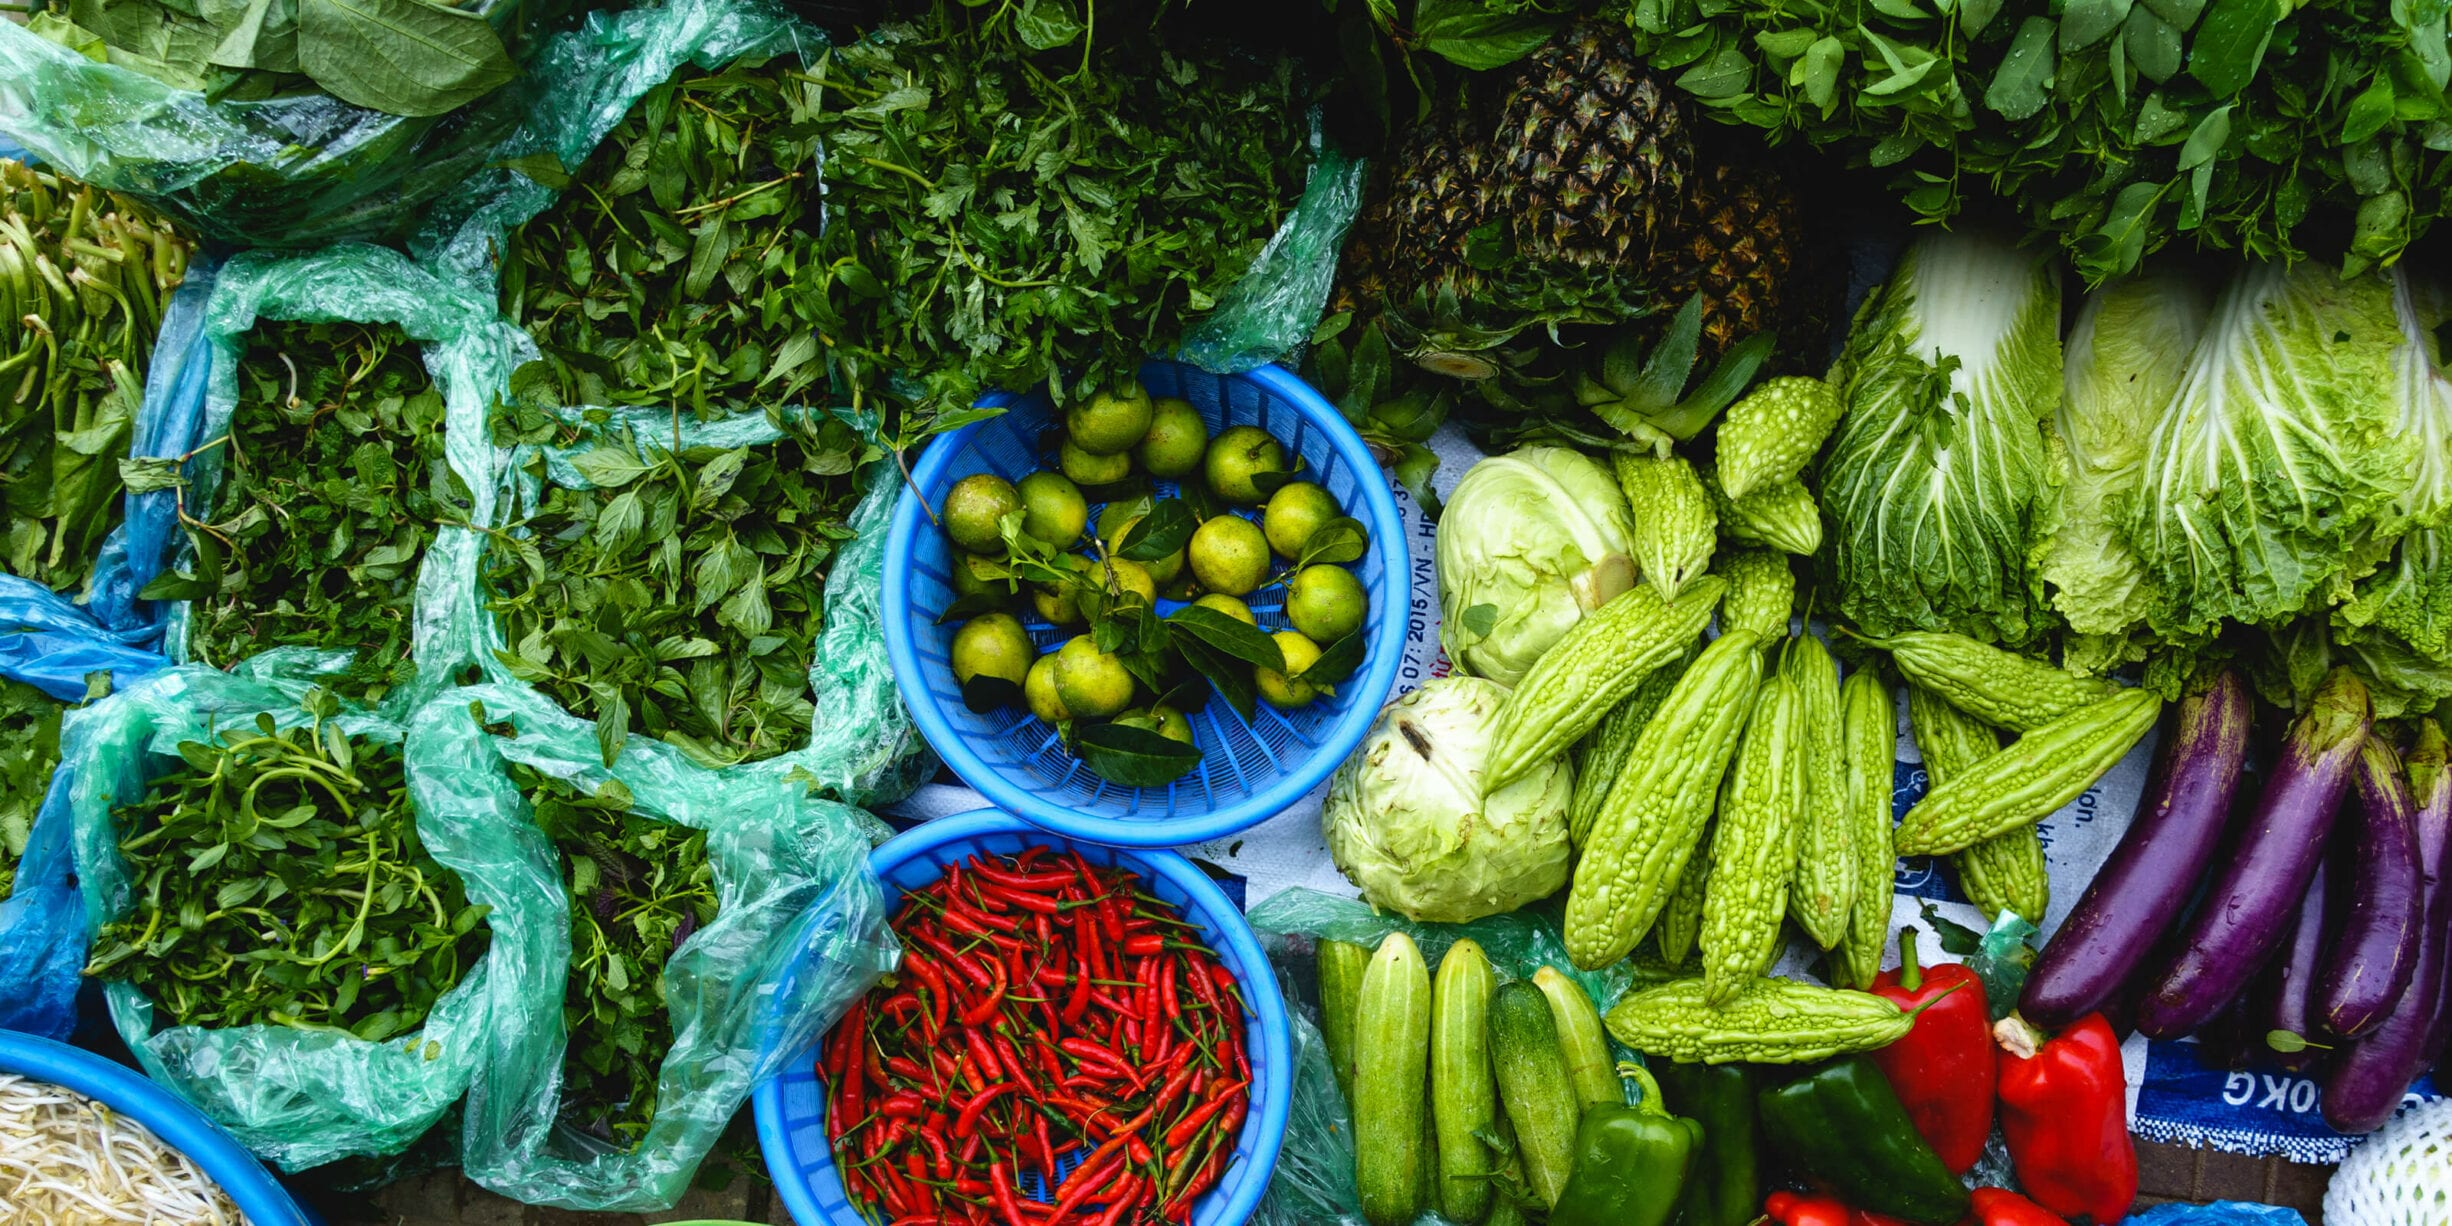 green vegetables, red peppers, food market